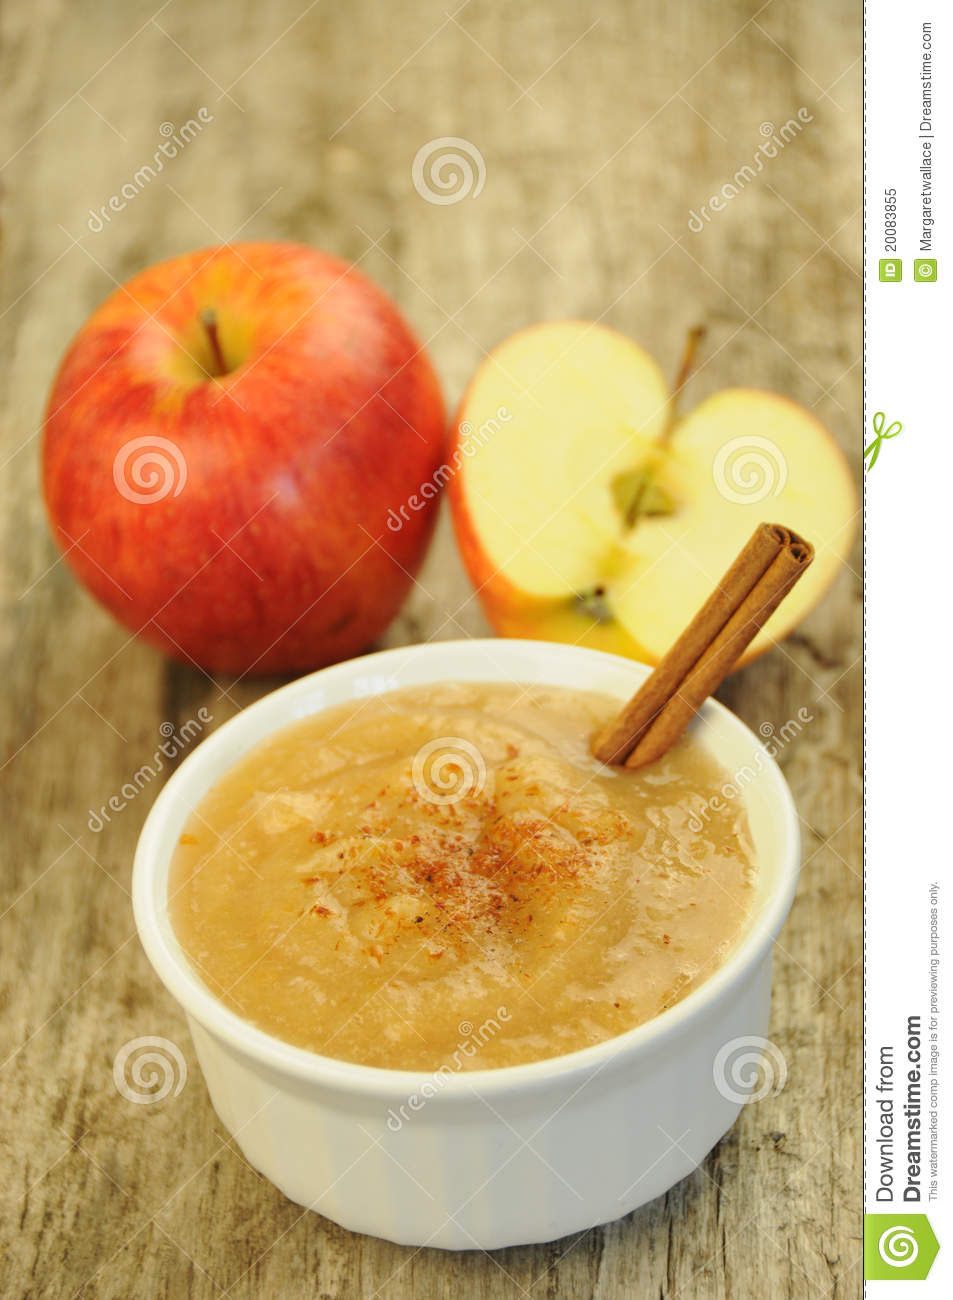 Apple Sauce Stock Image Image Of Gourmet Cooking